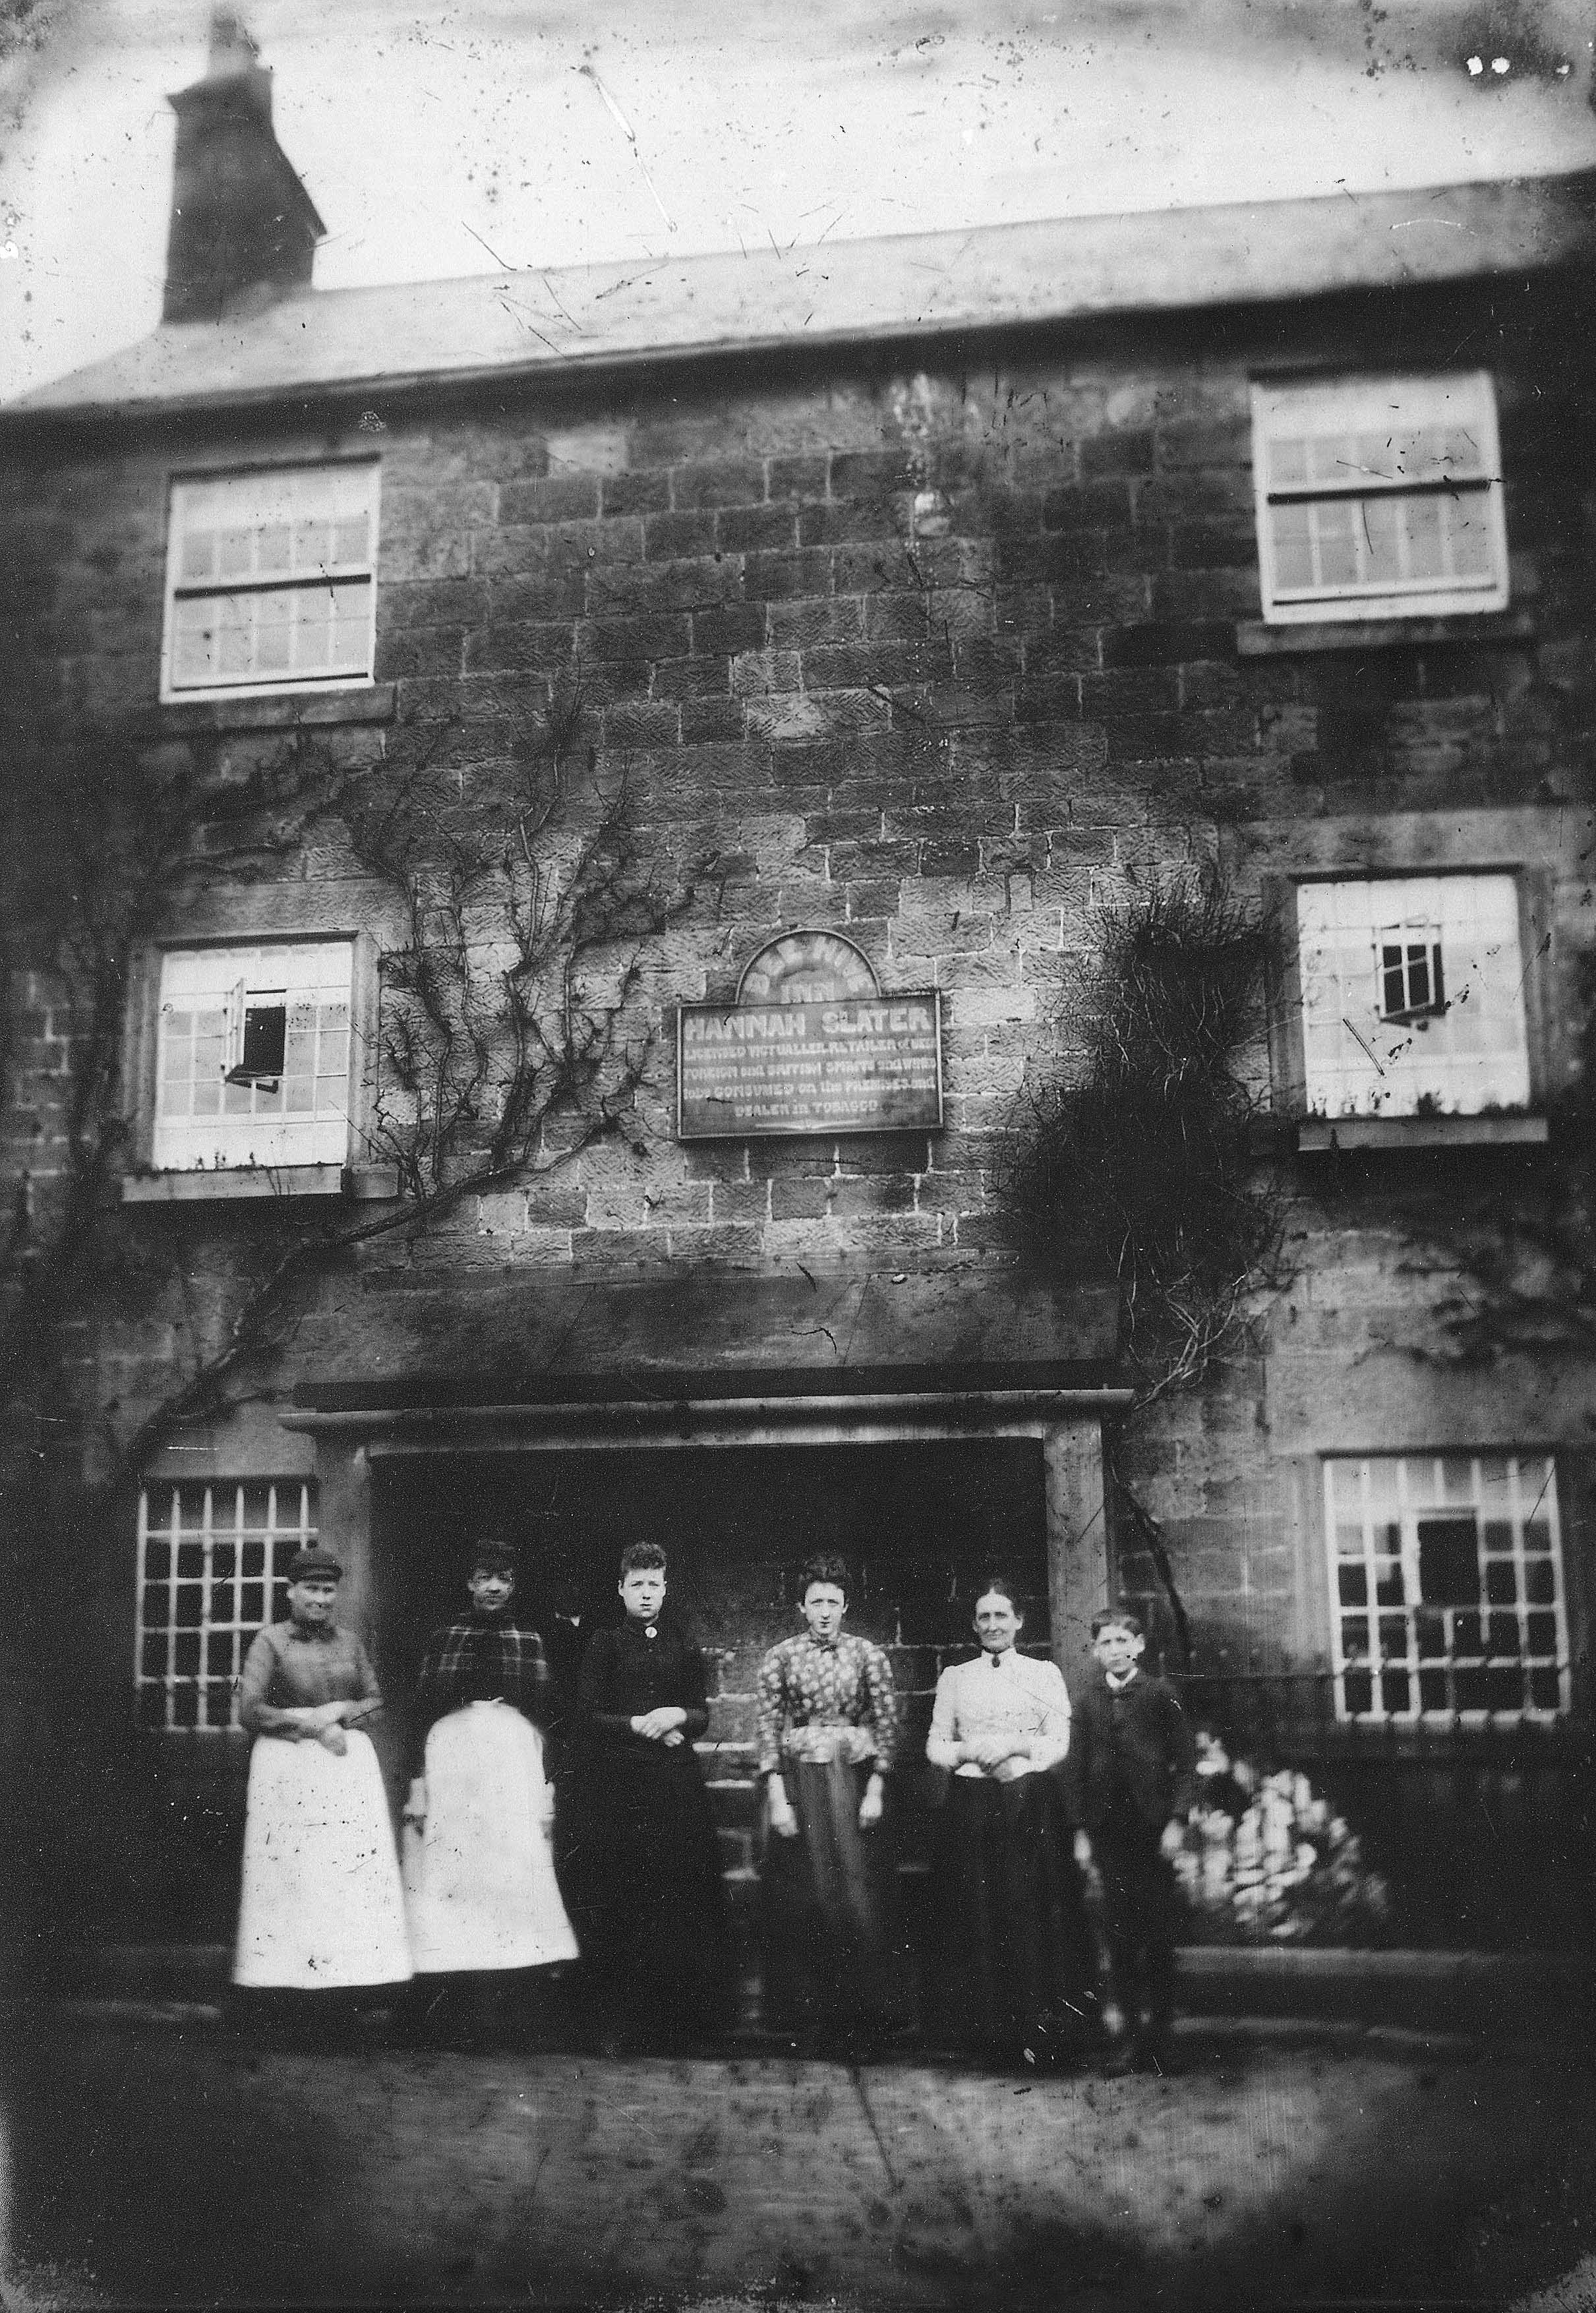 The Beehive circa 1890 - now the Social Club